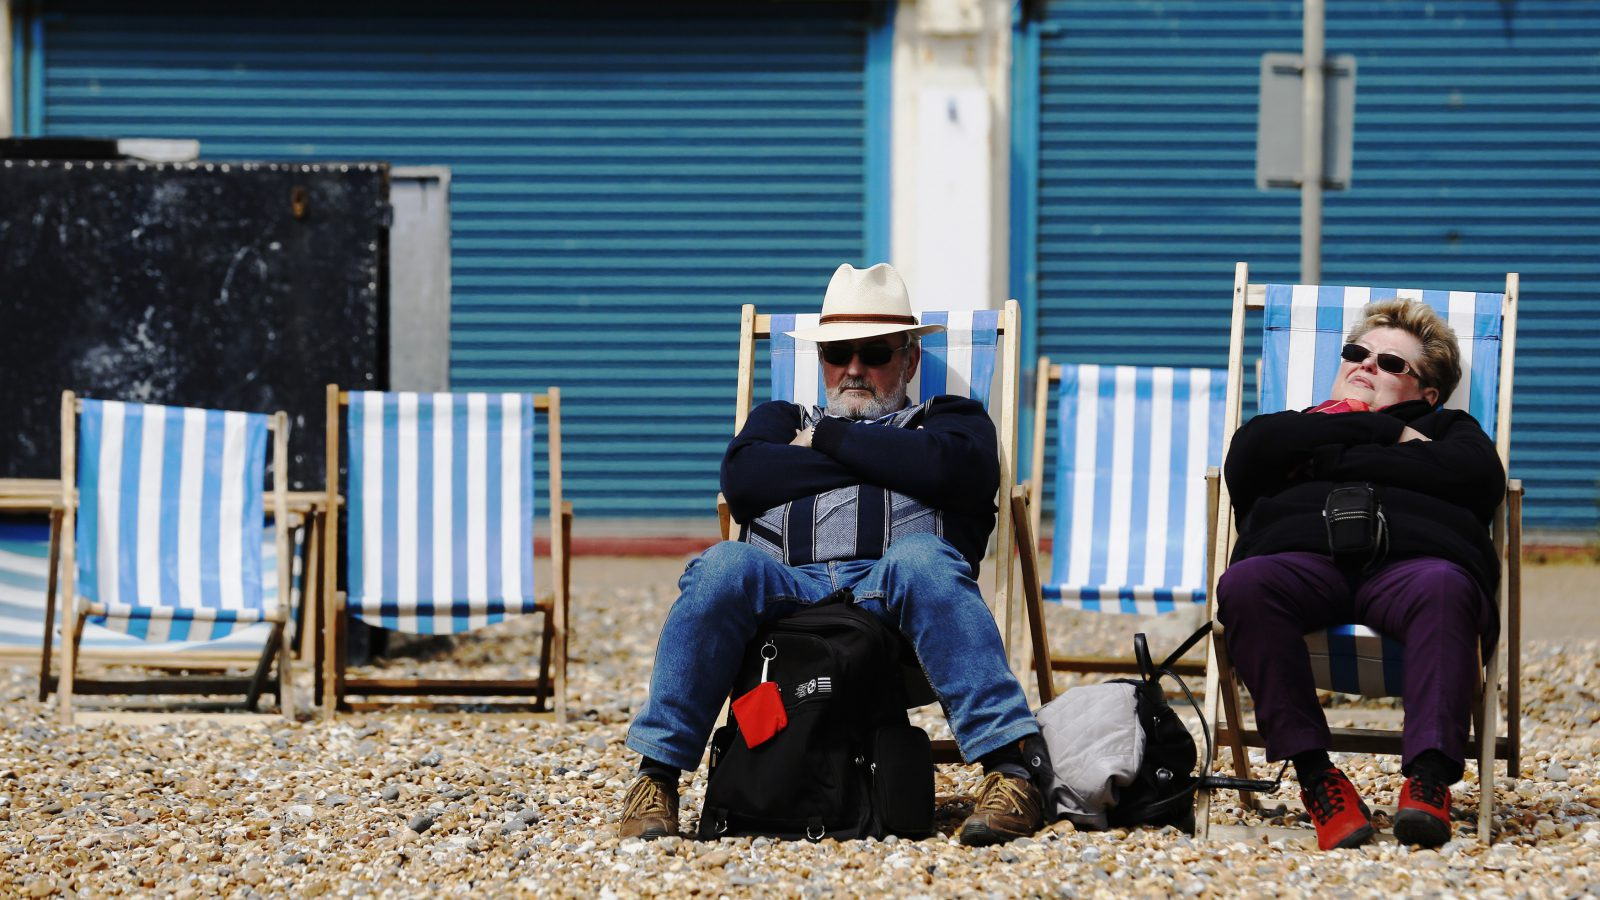 An elderly couple sits on deck chairs on a cool afternoon